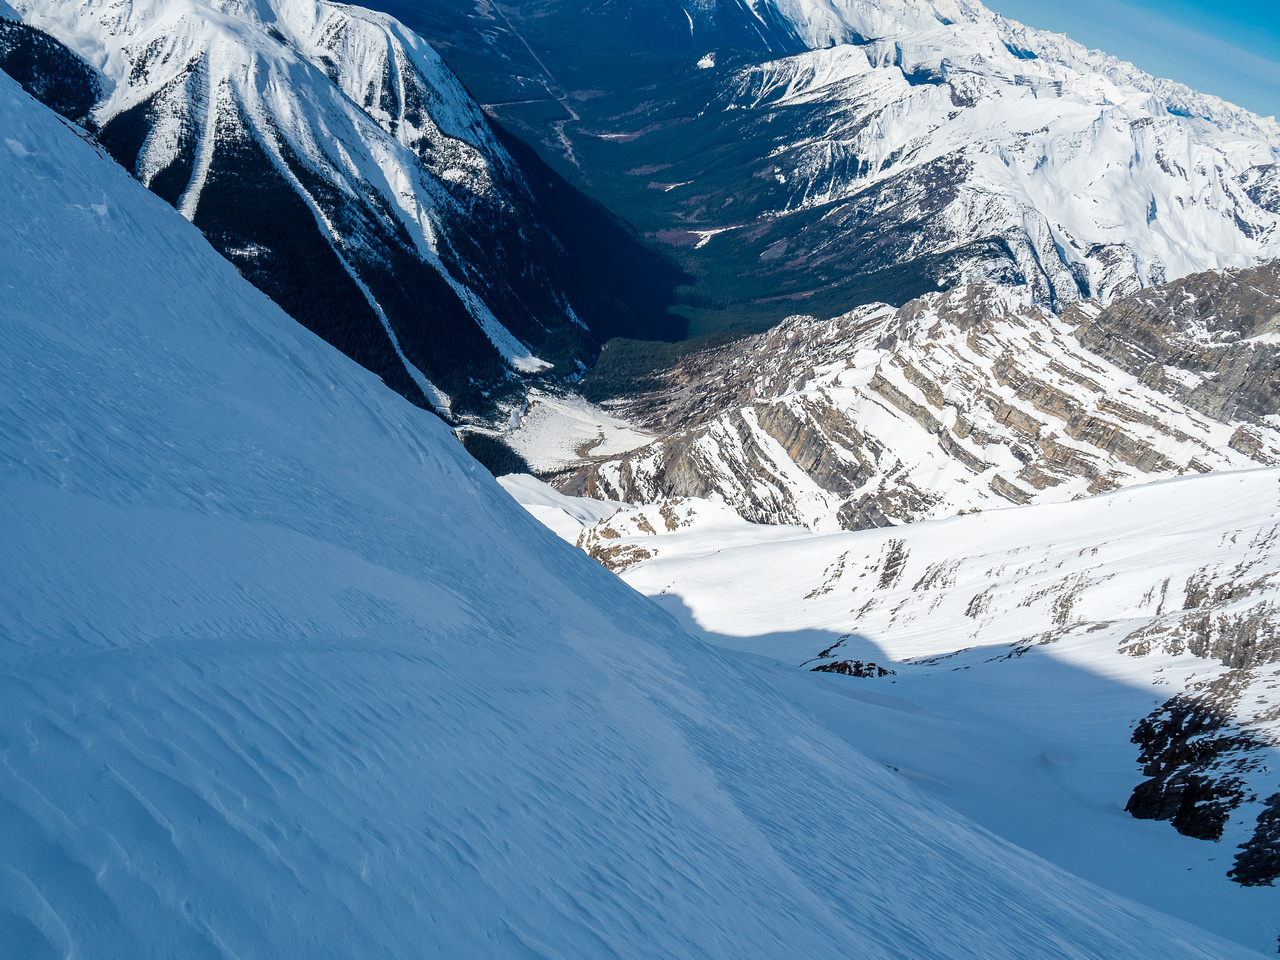 This is what you see when you look down the ascent route - over 2,000 meters straight down the west face!